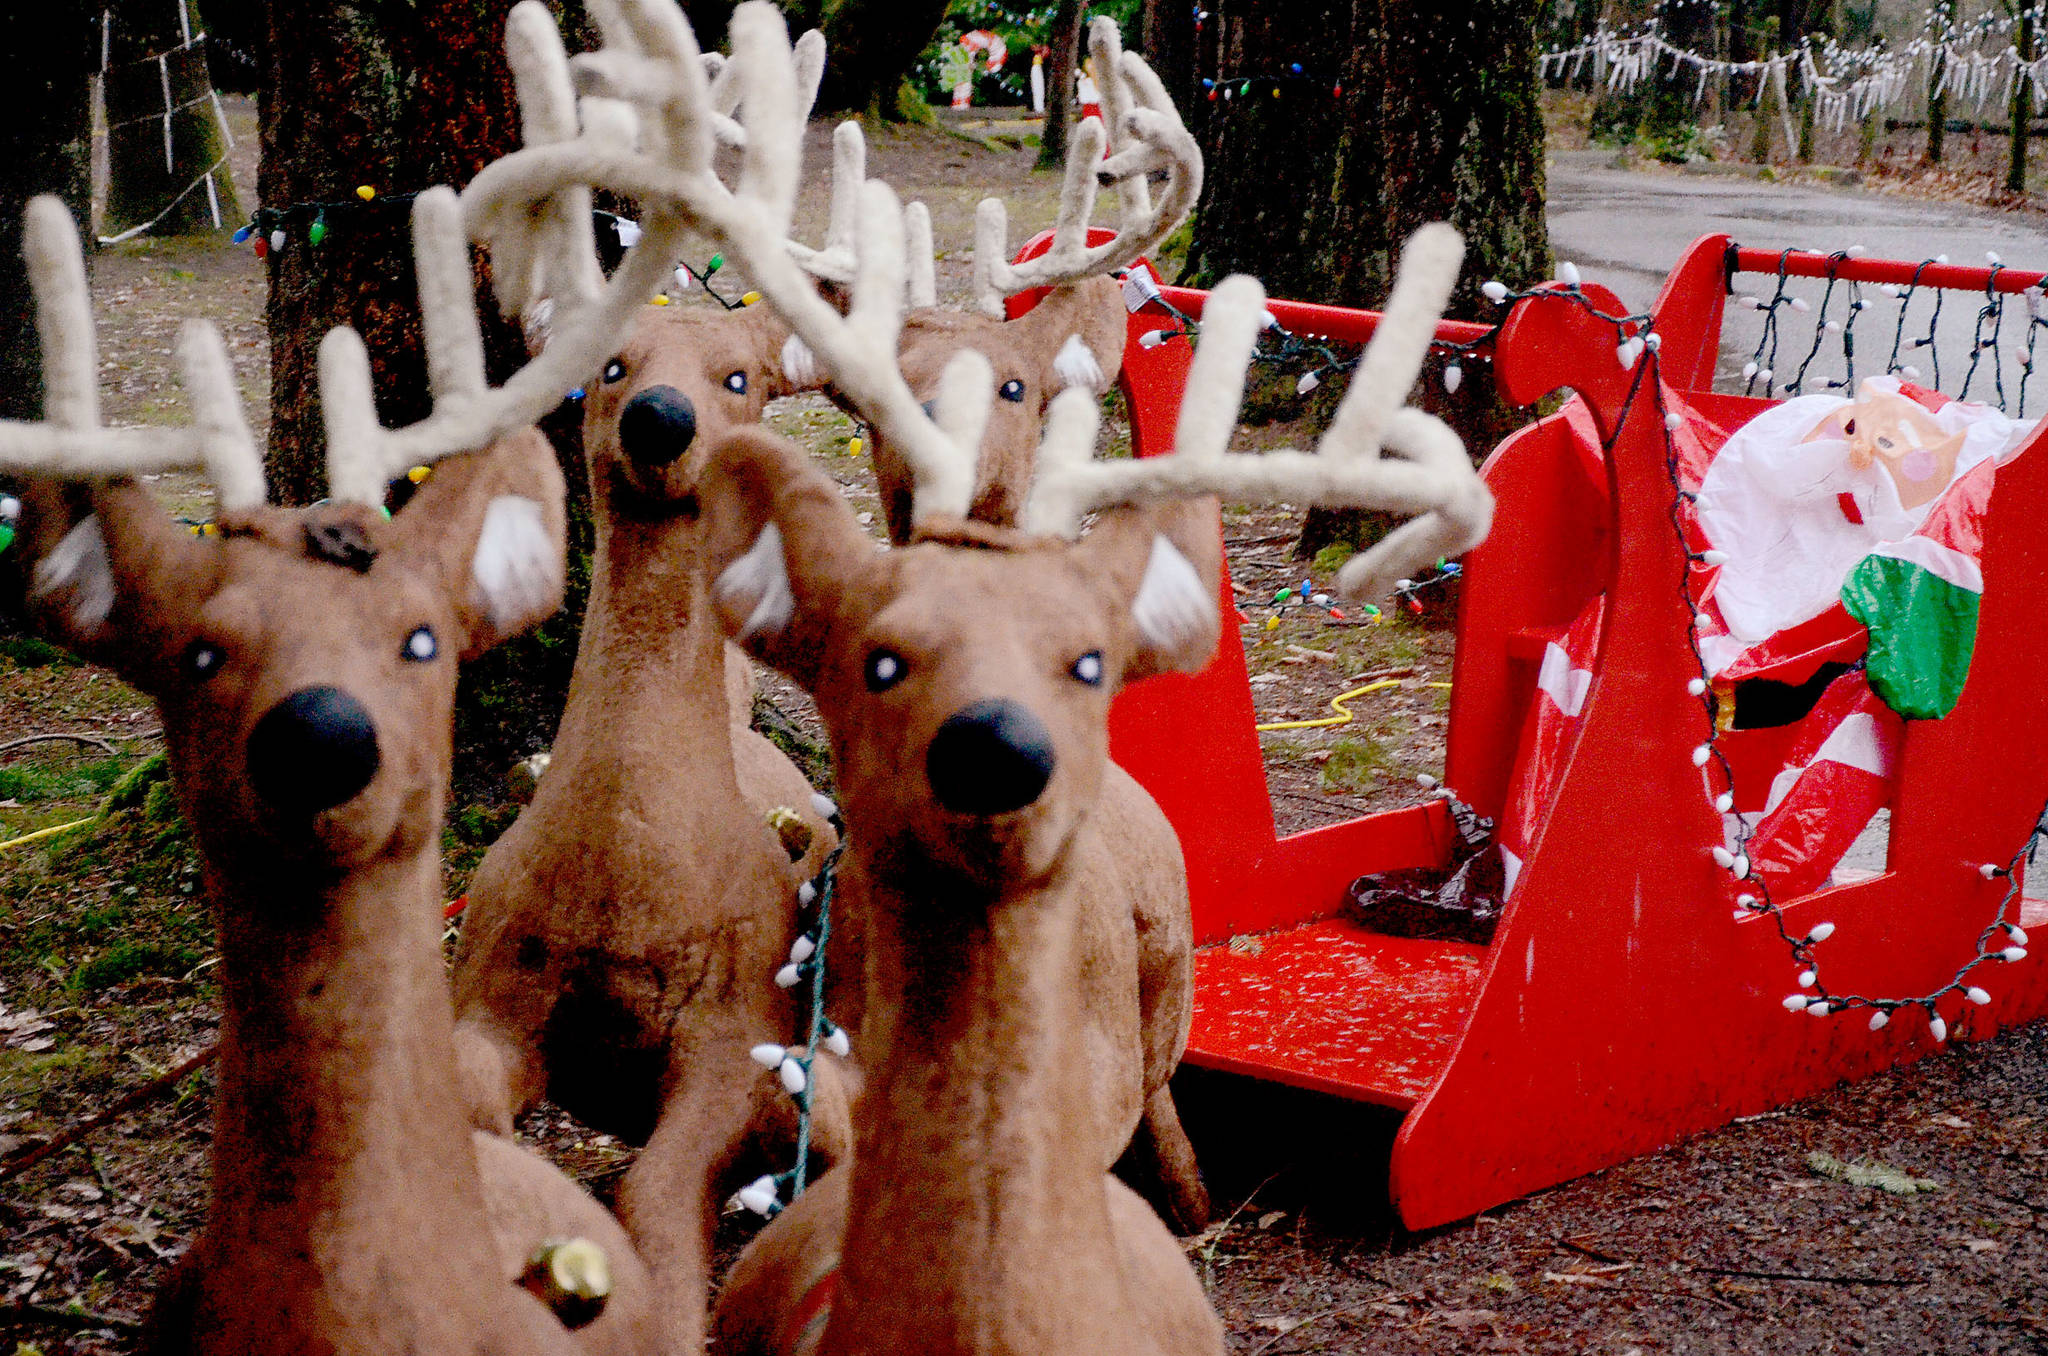 Helpers needed to install annual Christmas display in Langley park